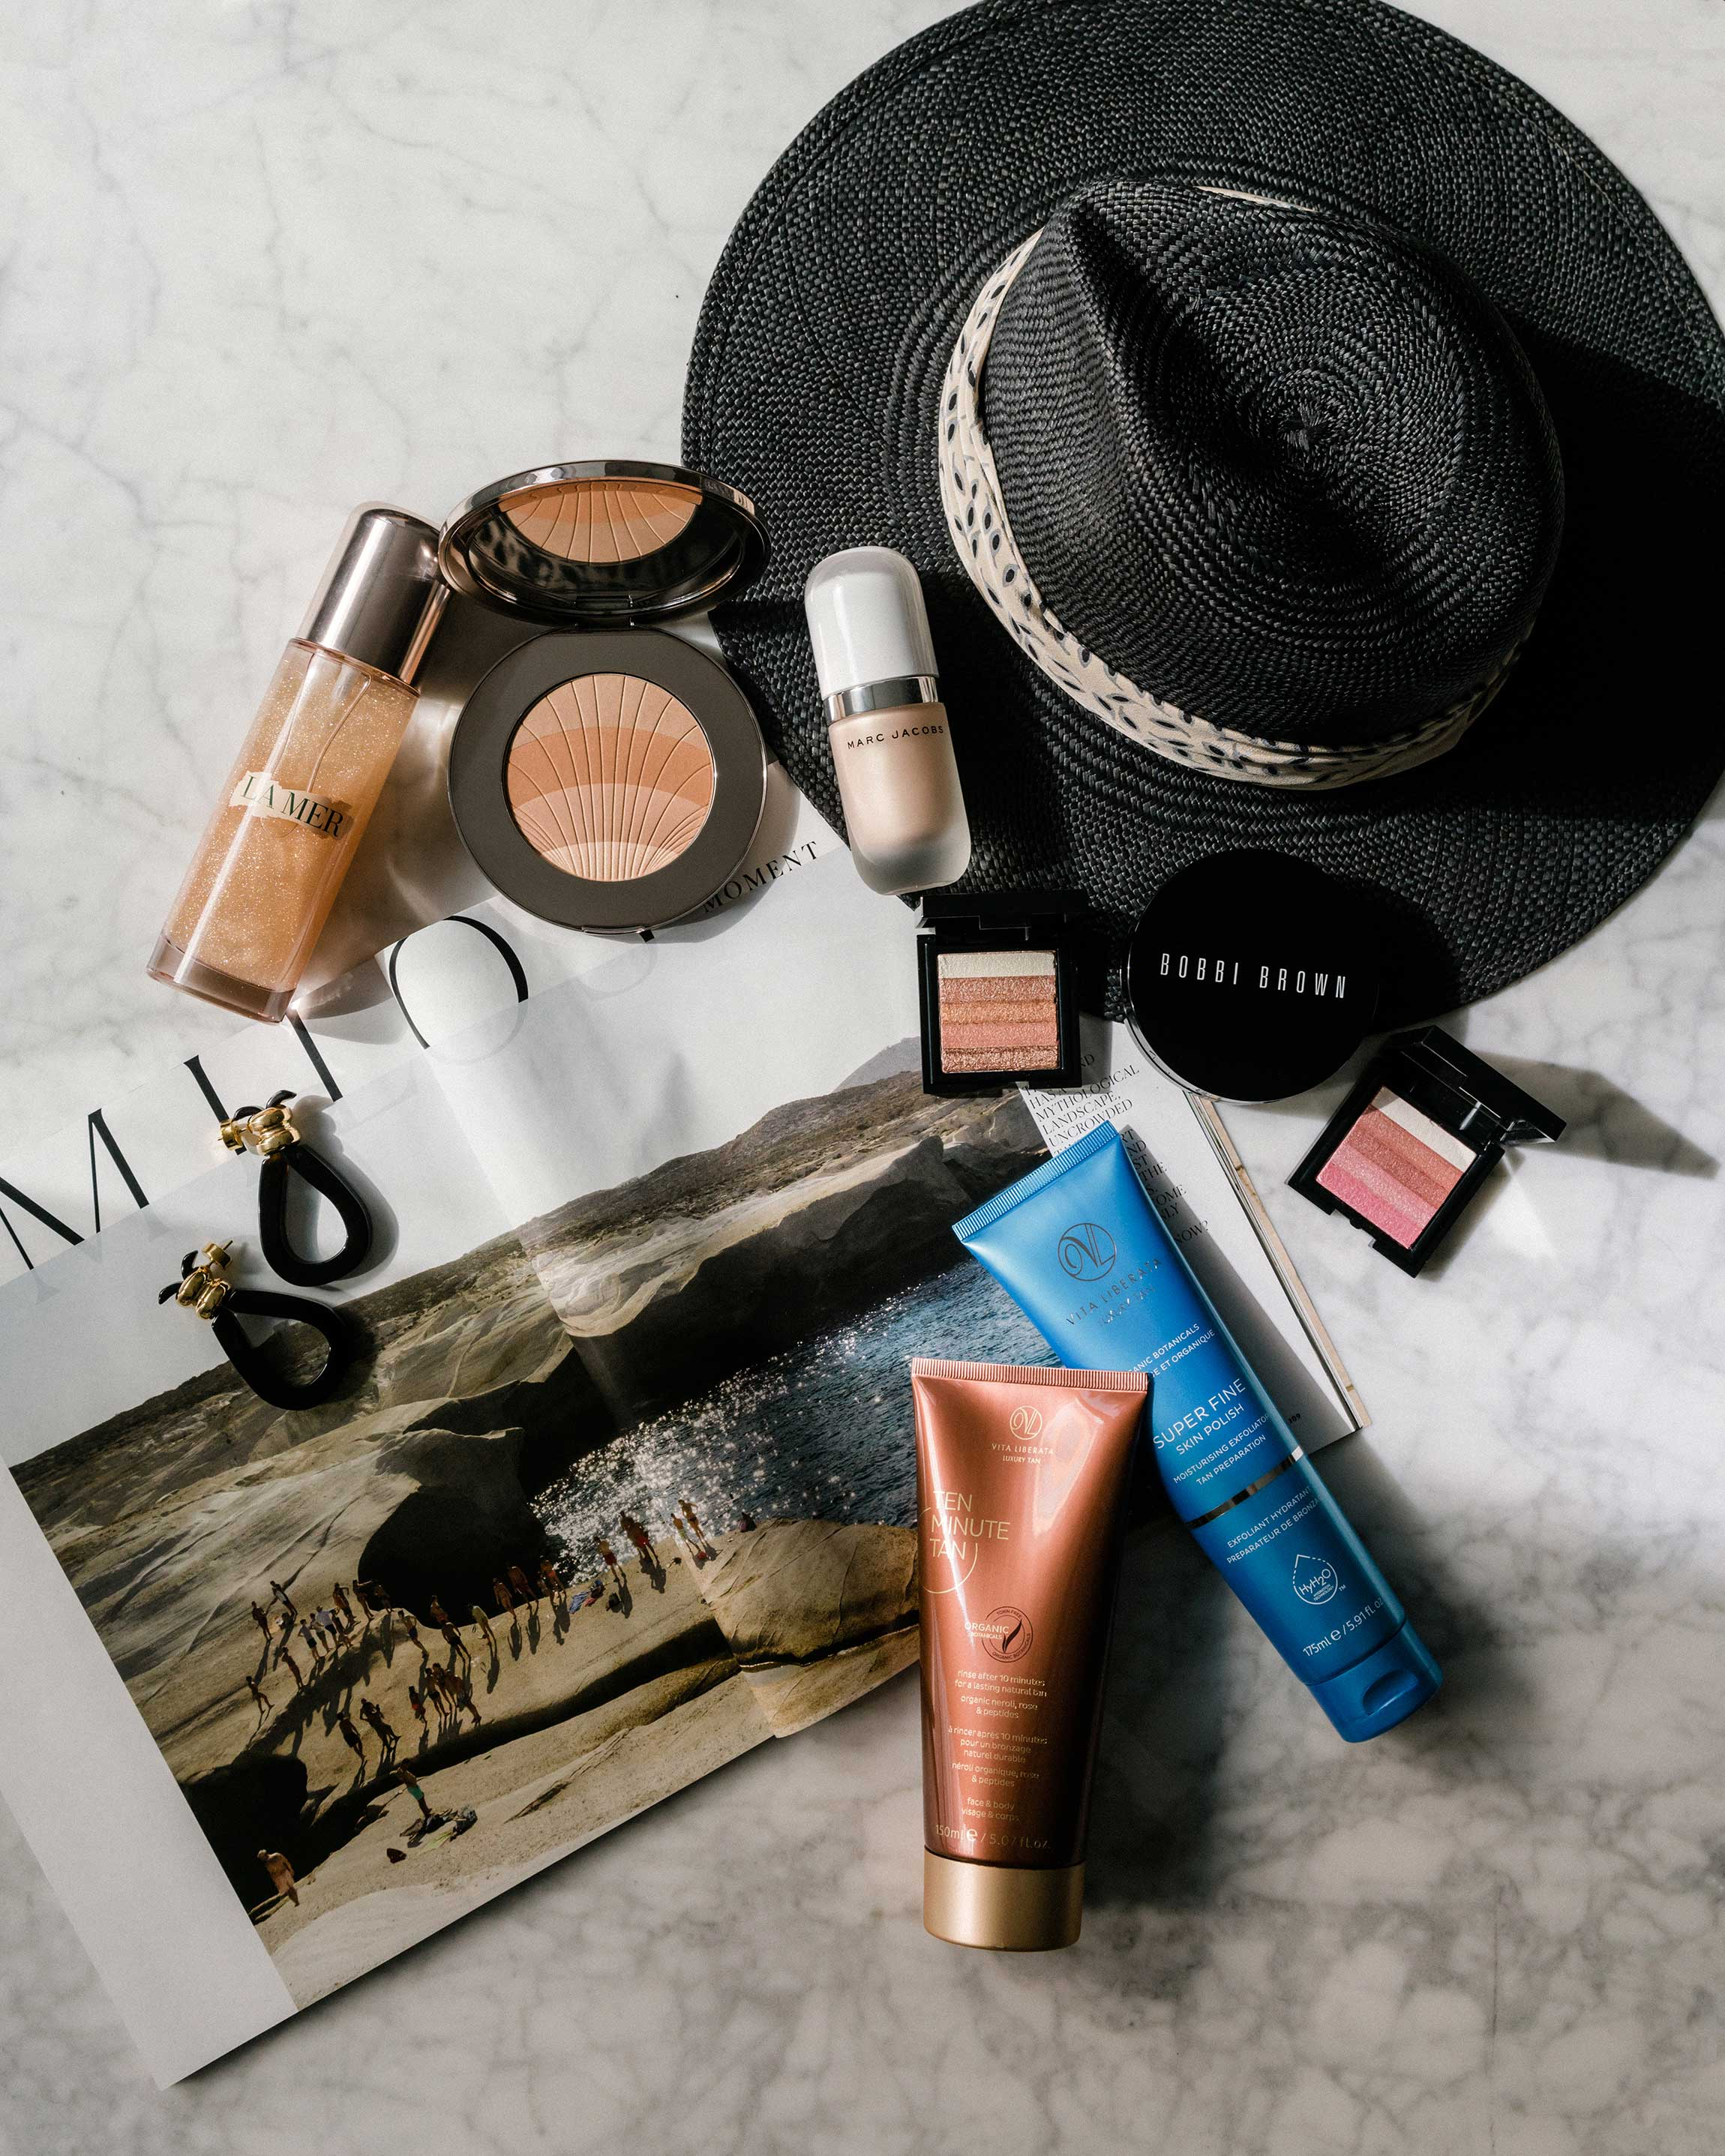 La Mer Body Oil  and  Bronzing Powder ,  Marc Jacobs Highlighter ,  Bobbi Brown Cushion Compact  and  Powders ,  Viva Liberta Tan  and  Scrub ,  Loewe Earrings ,  Janessa Leone Hat